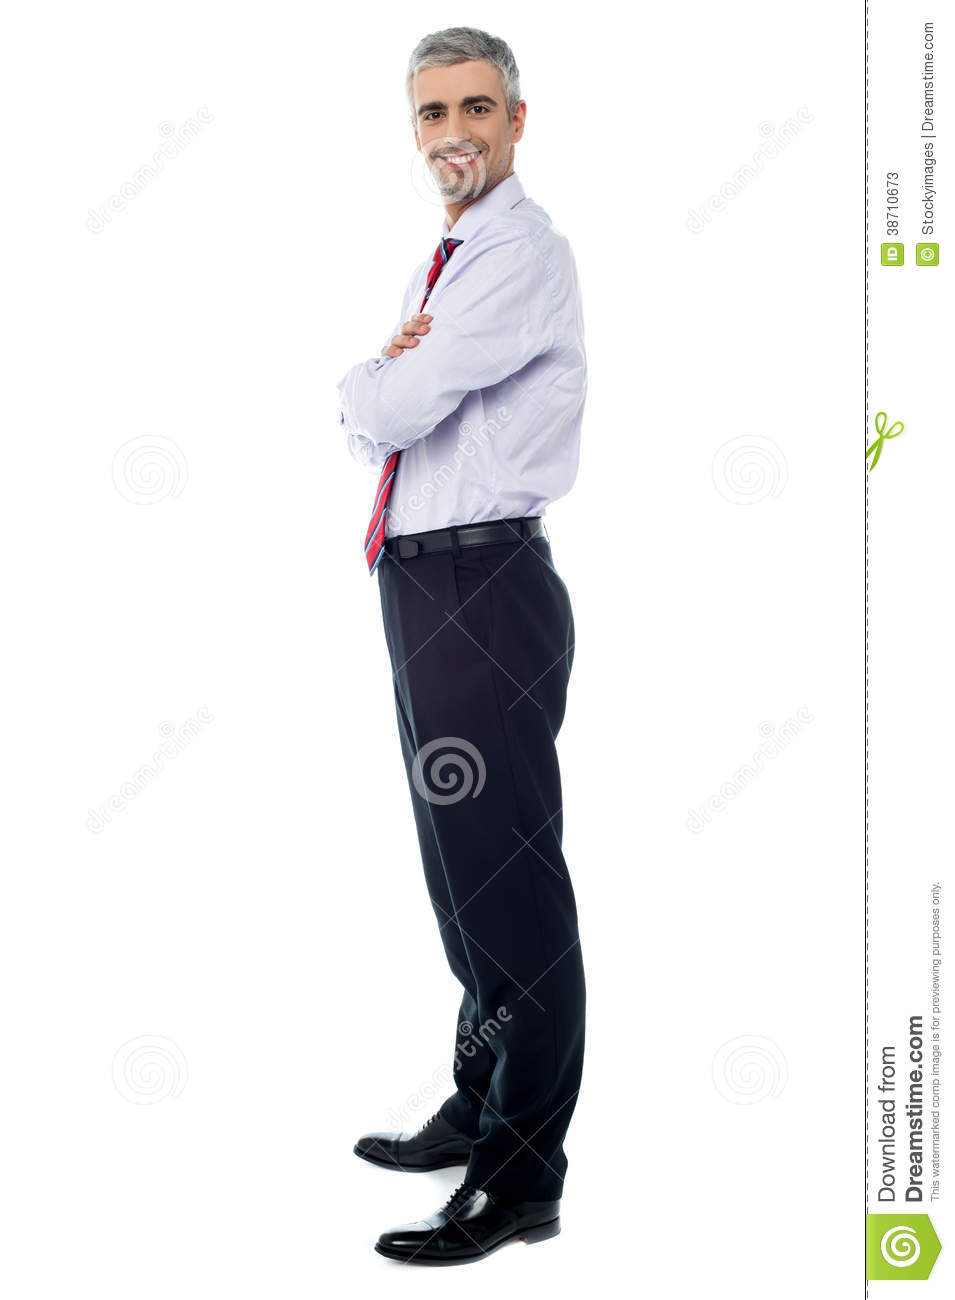 Smiling arms crossed senior businessman